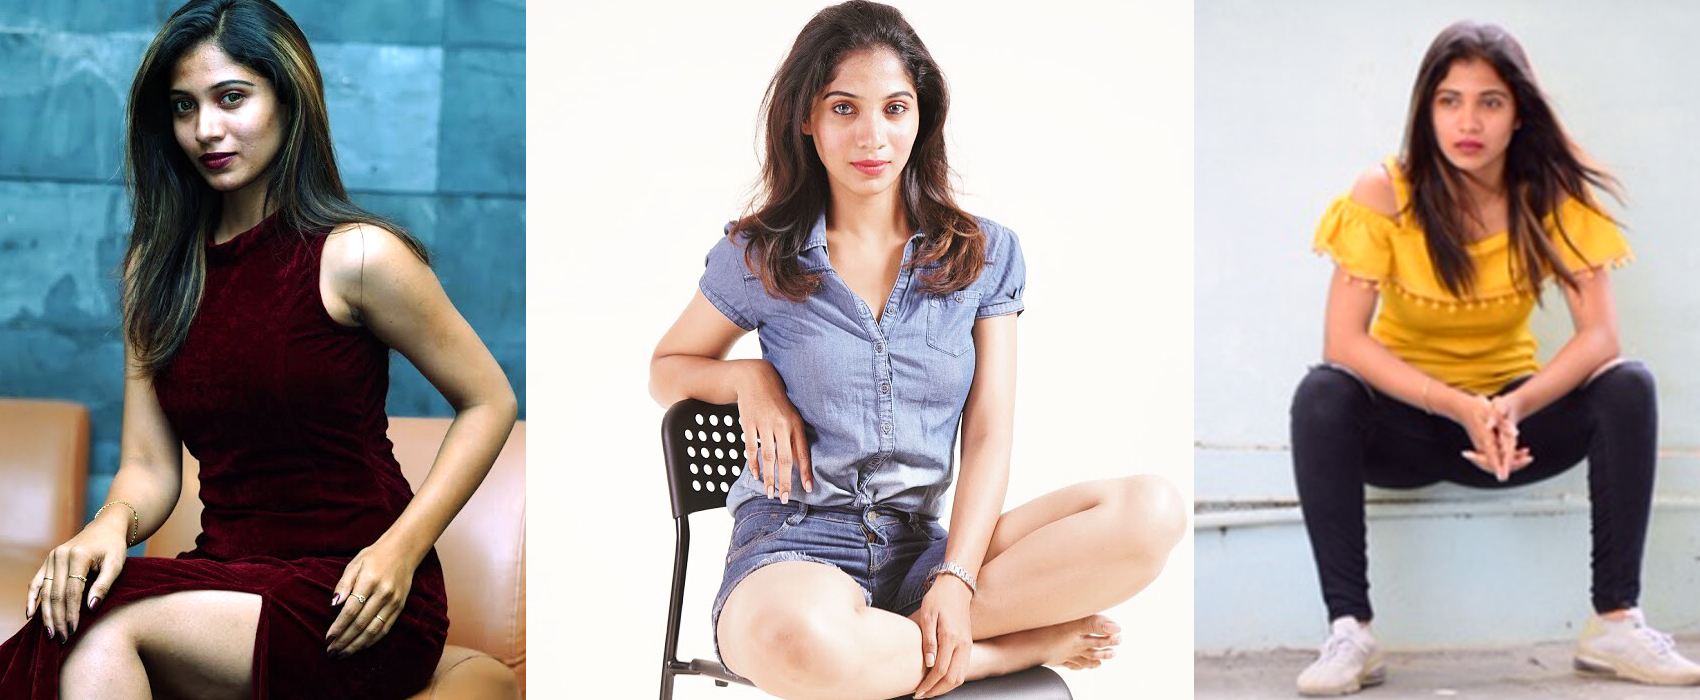 Sahar Krishnan: With Whatever Little I Have Done, I Don't Think I Am Successful Just Yet Rethinking Fashion